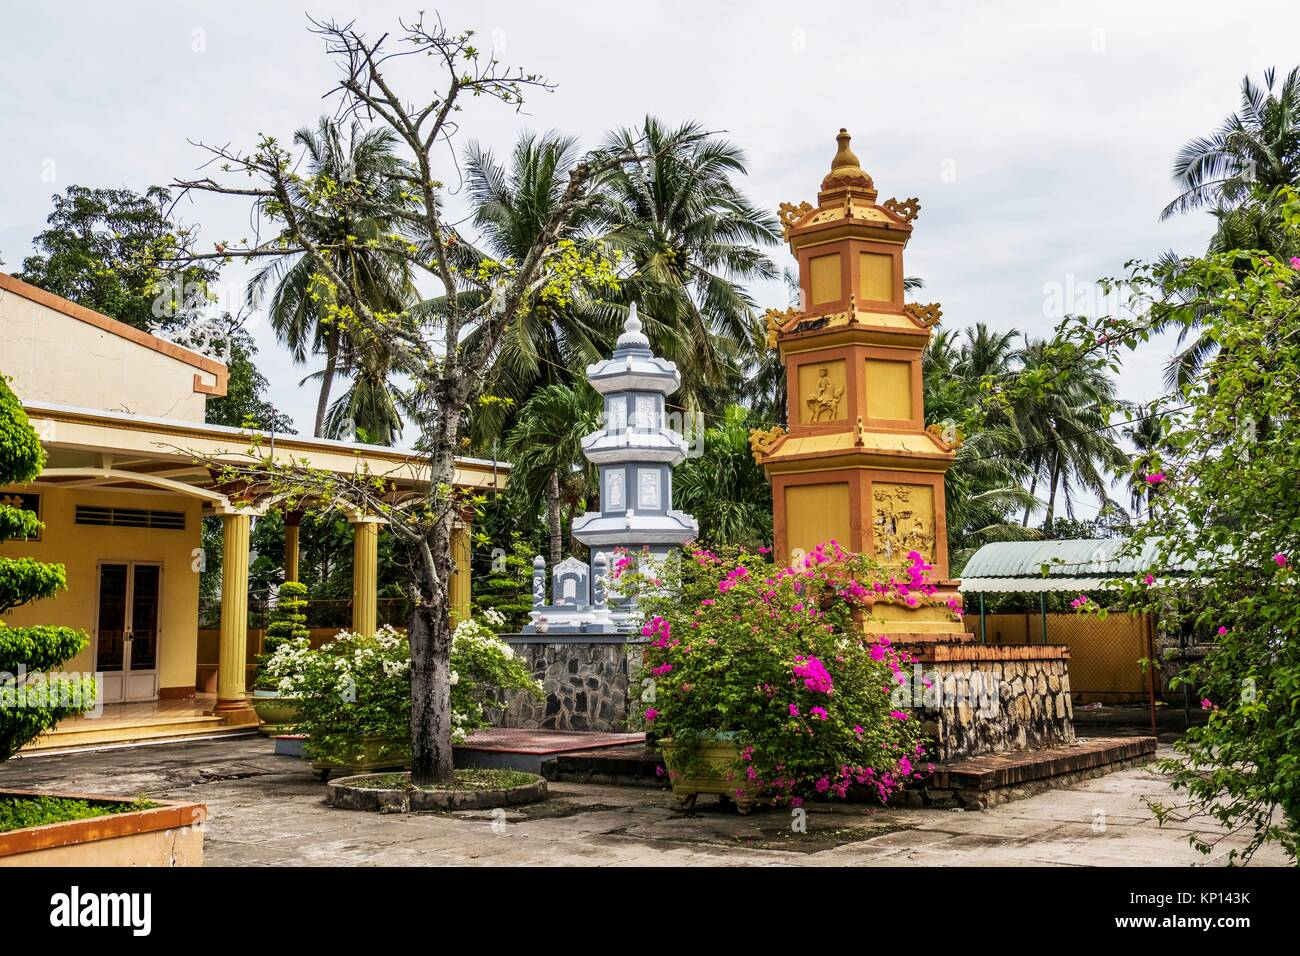 Vietnam, My Tho, Mekong Delta river area. Vinh Trang Pagoda complex. - Stock Image